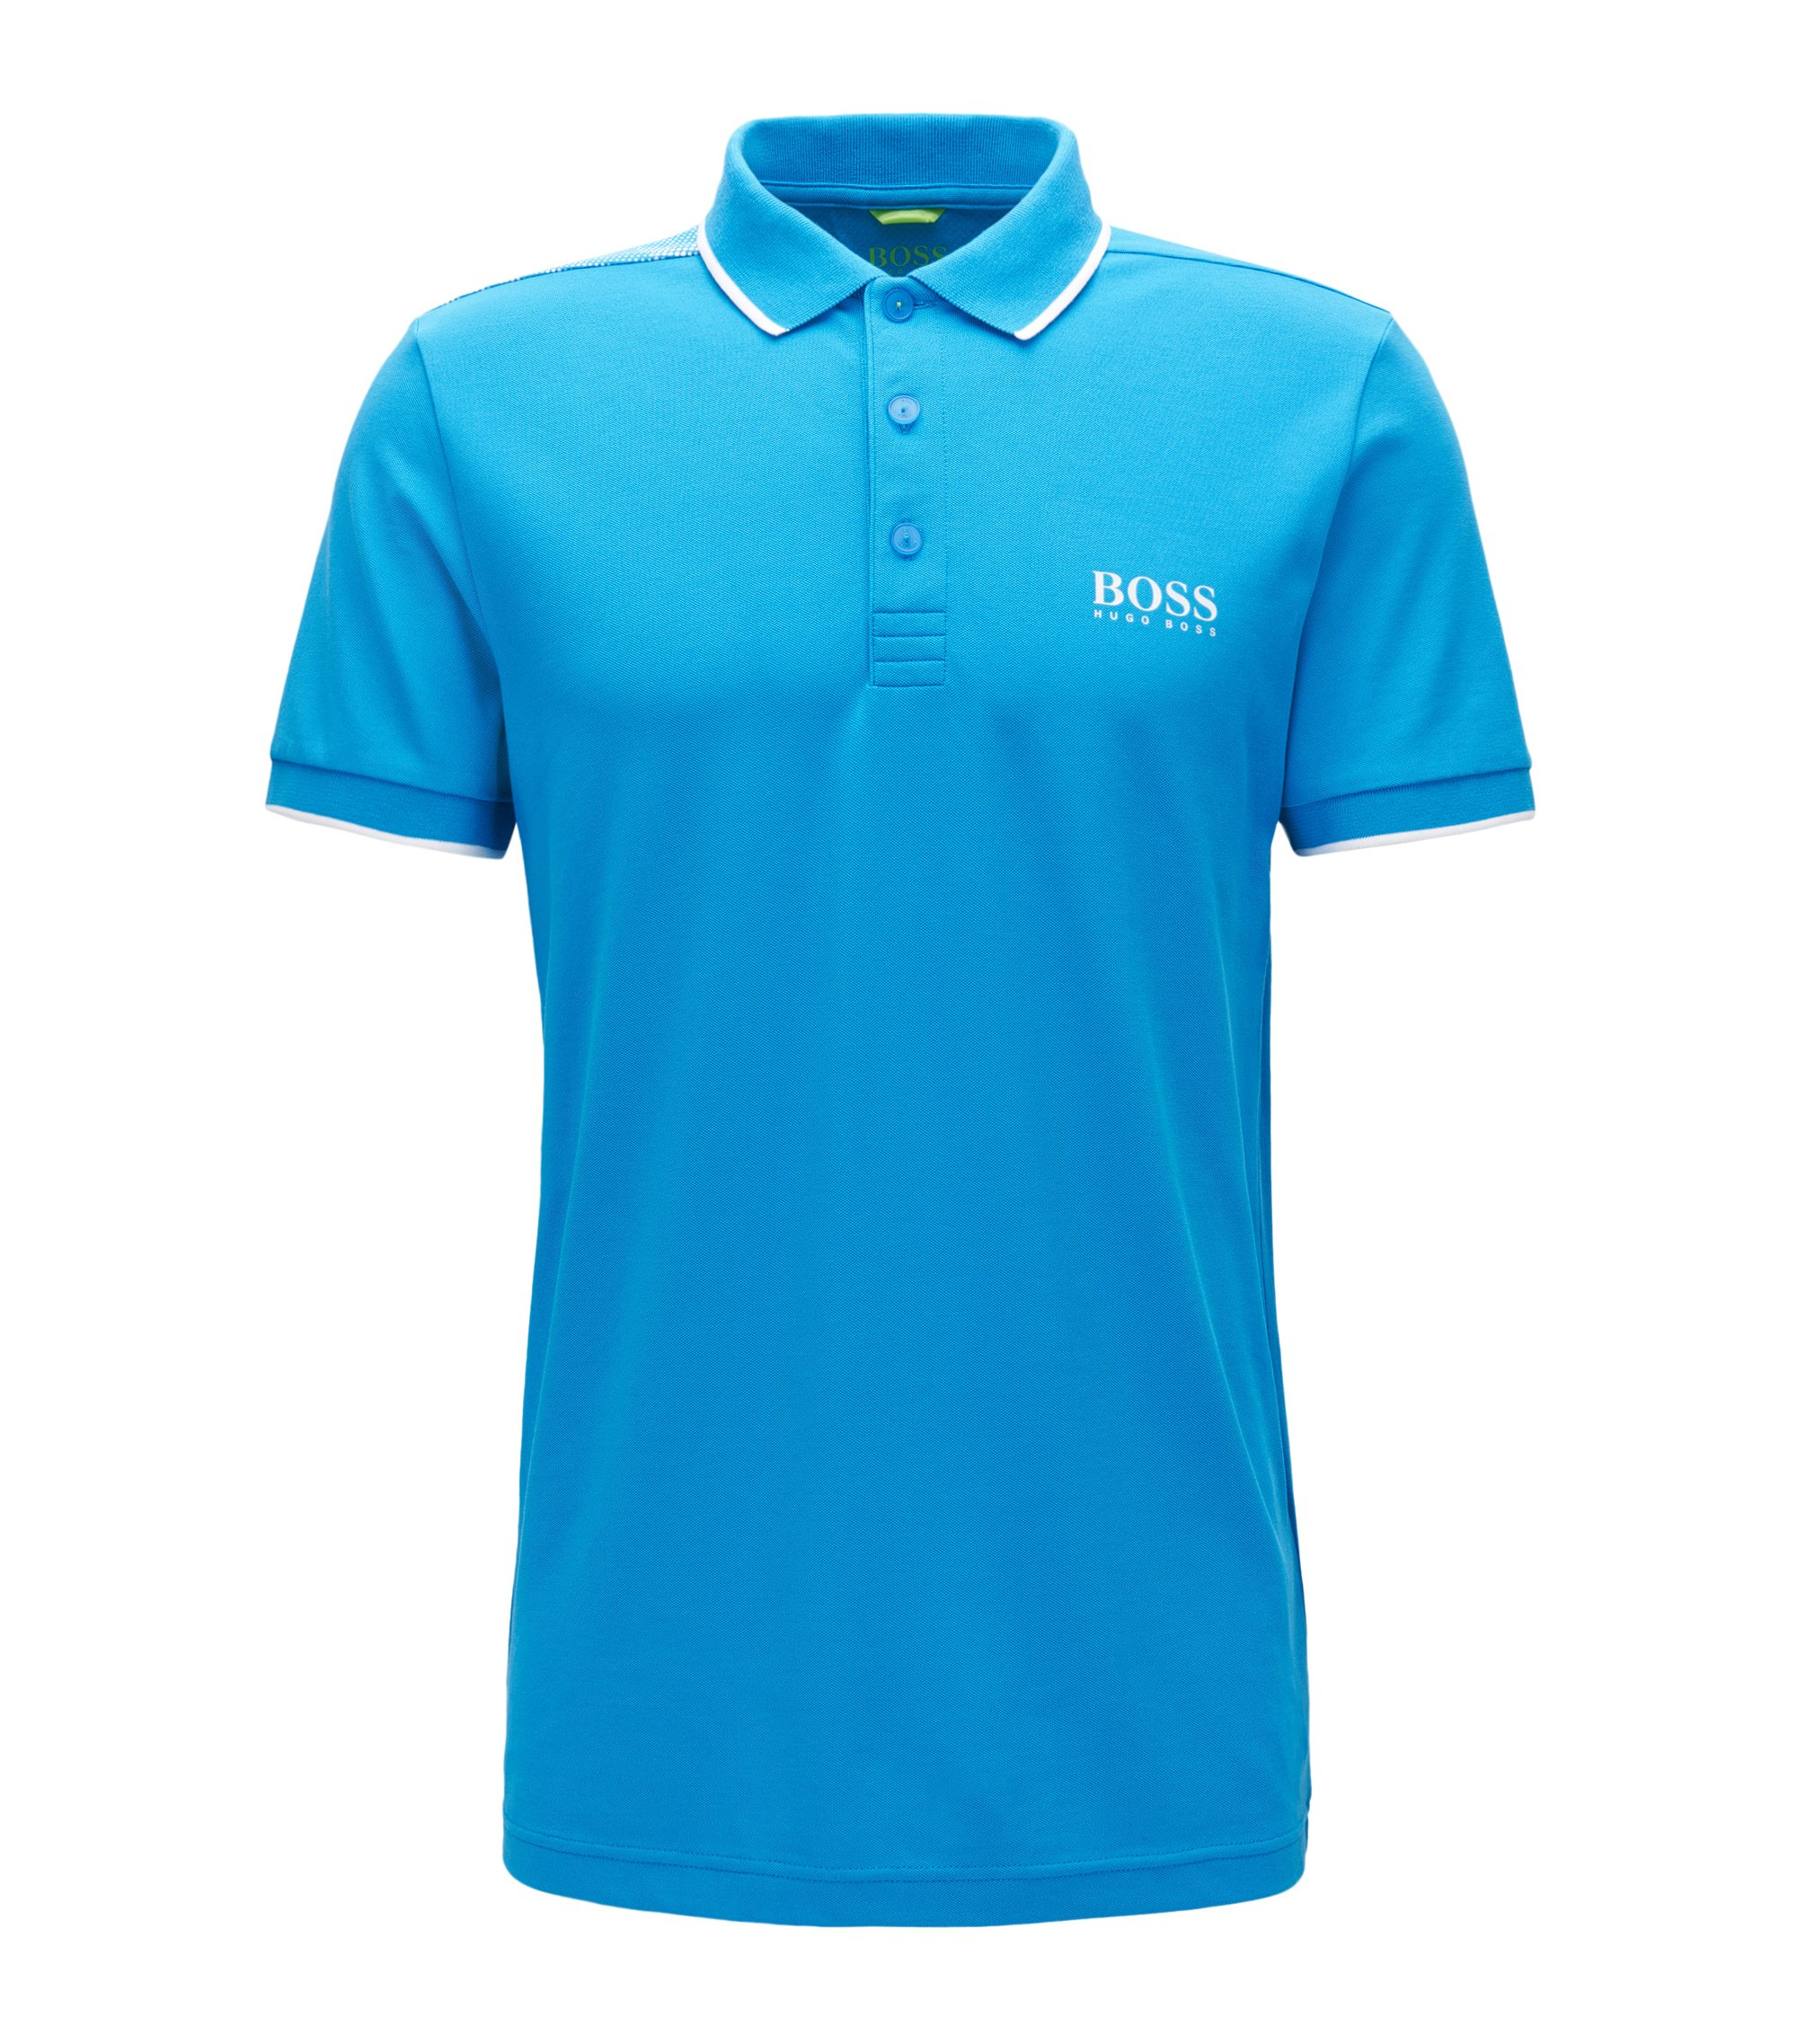 Tipped Cotton Blend  Polo Shirt, Slim Fit | Paul Pro, Open Blue